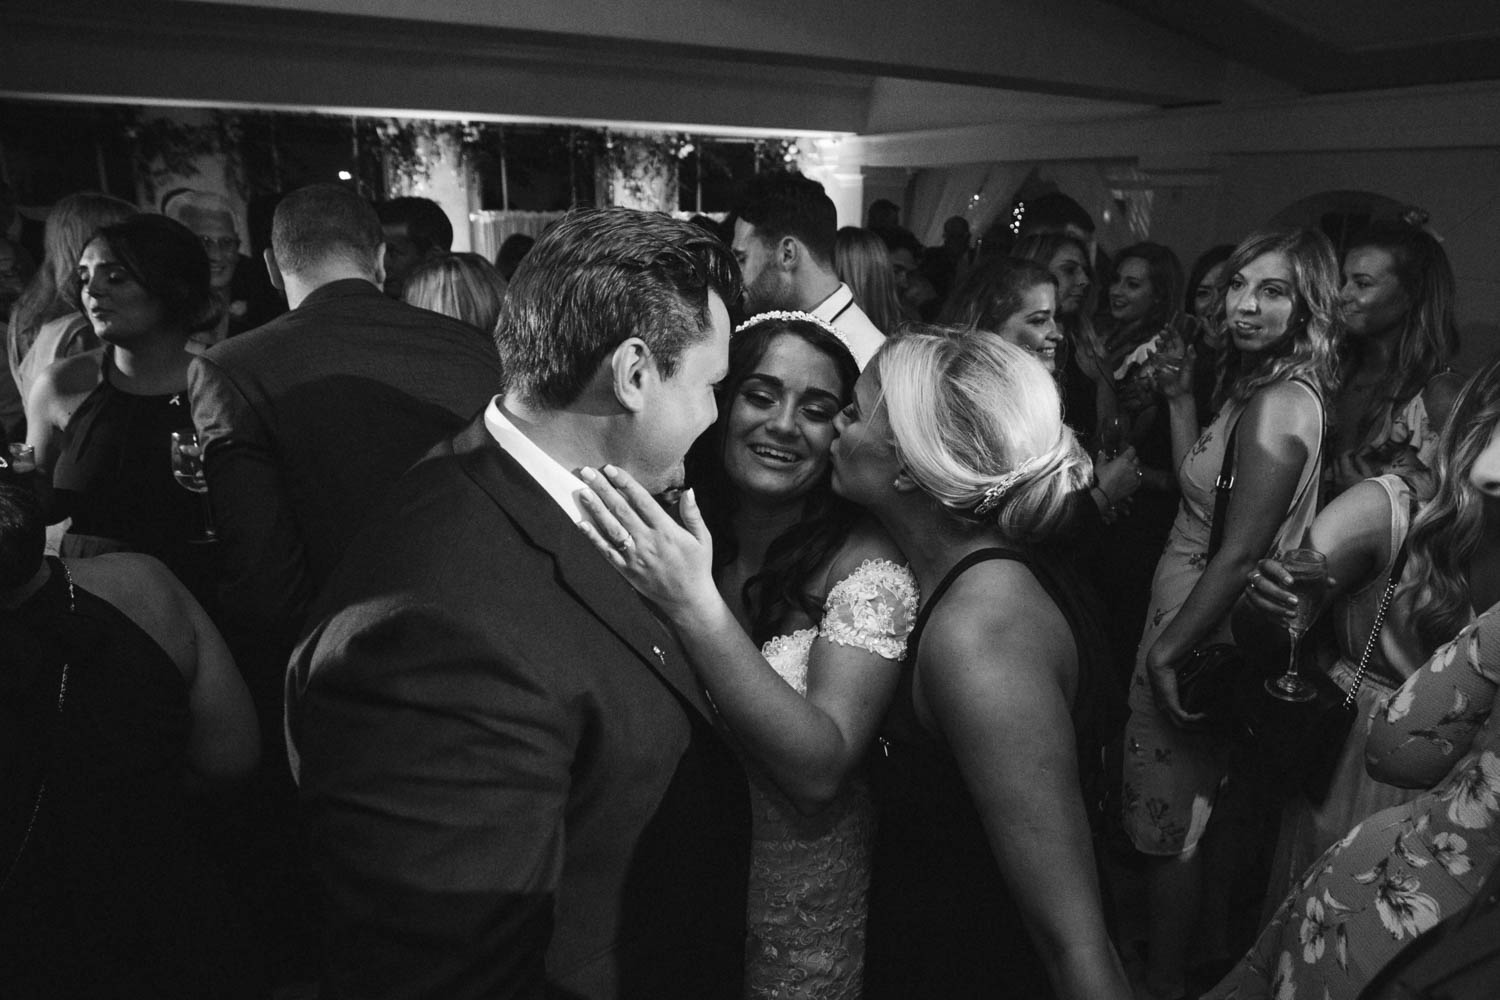 brides getting kissed from all angles by friends